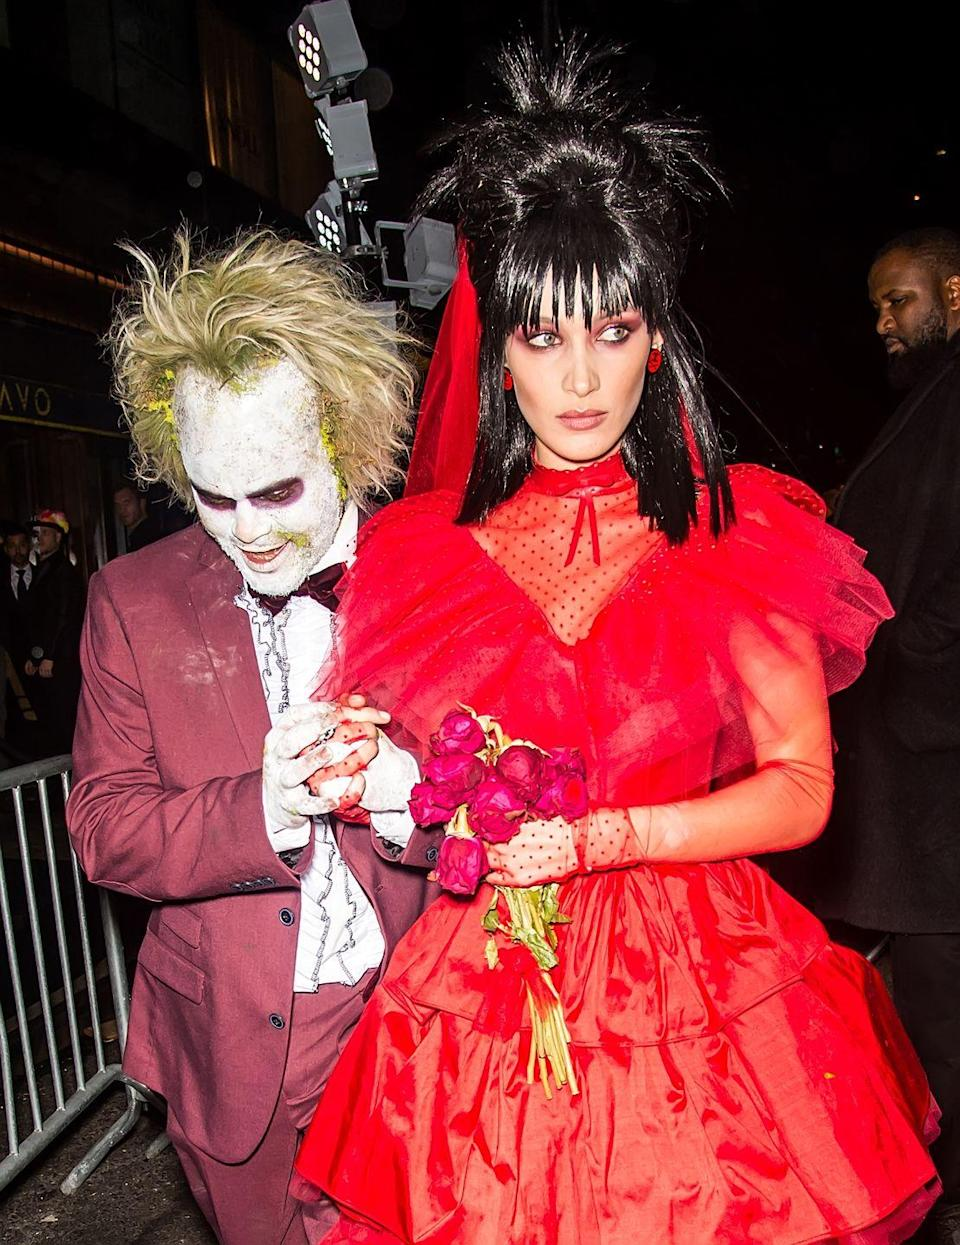 <p>Bella Hadid impersonated Lydia Deetz from Tim Burton's 1988 <em>Beetlejuice</em> film with a frothy bloodred tulle gown, layered over a polka-dot sheer blouse. Ace this look by teasing your hair and adding a bouquet of dead red roses. </p>